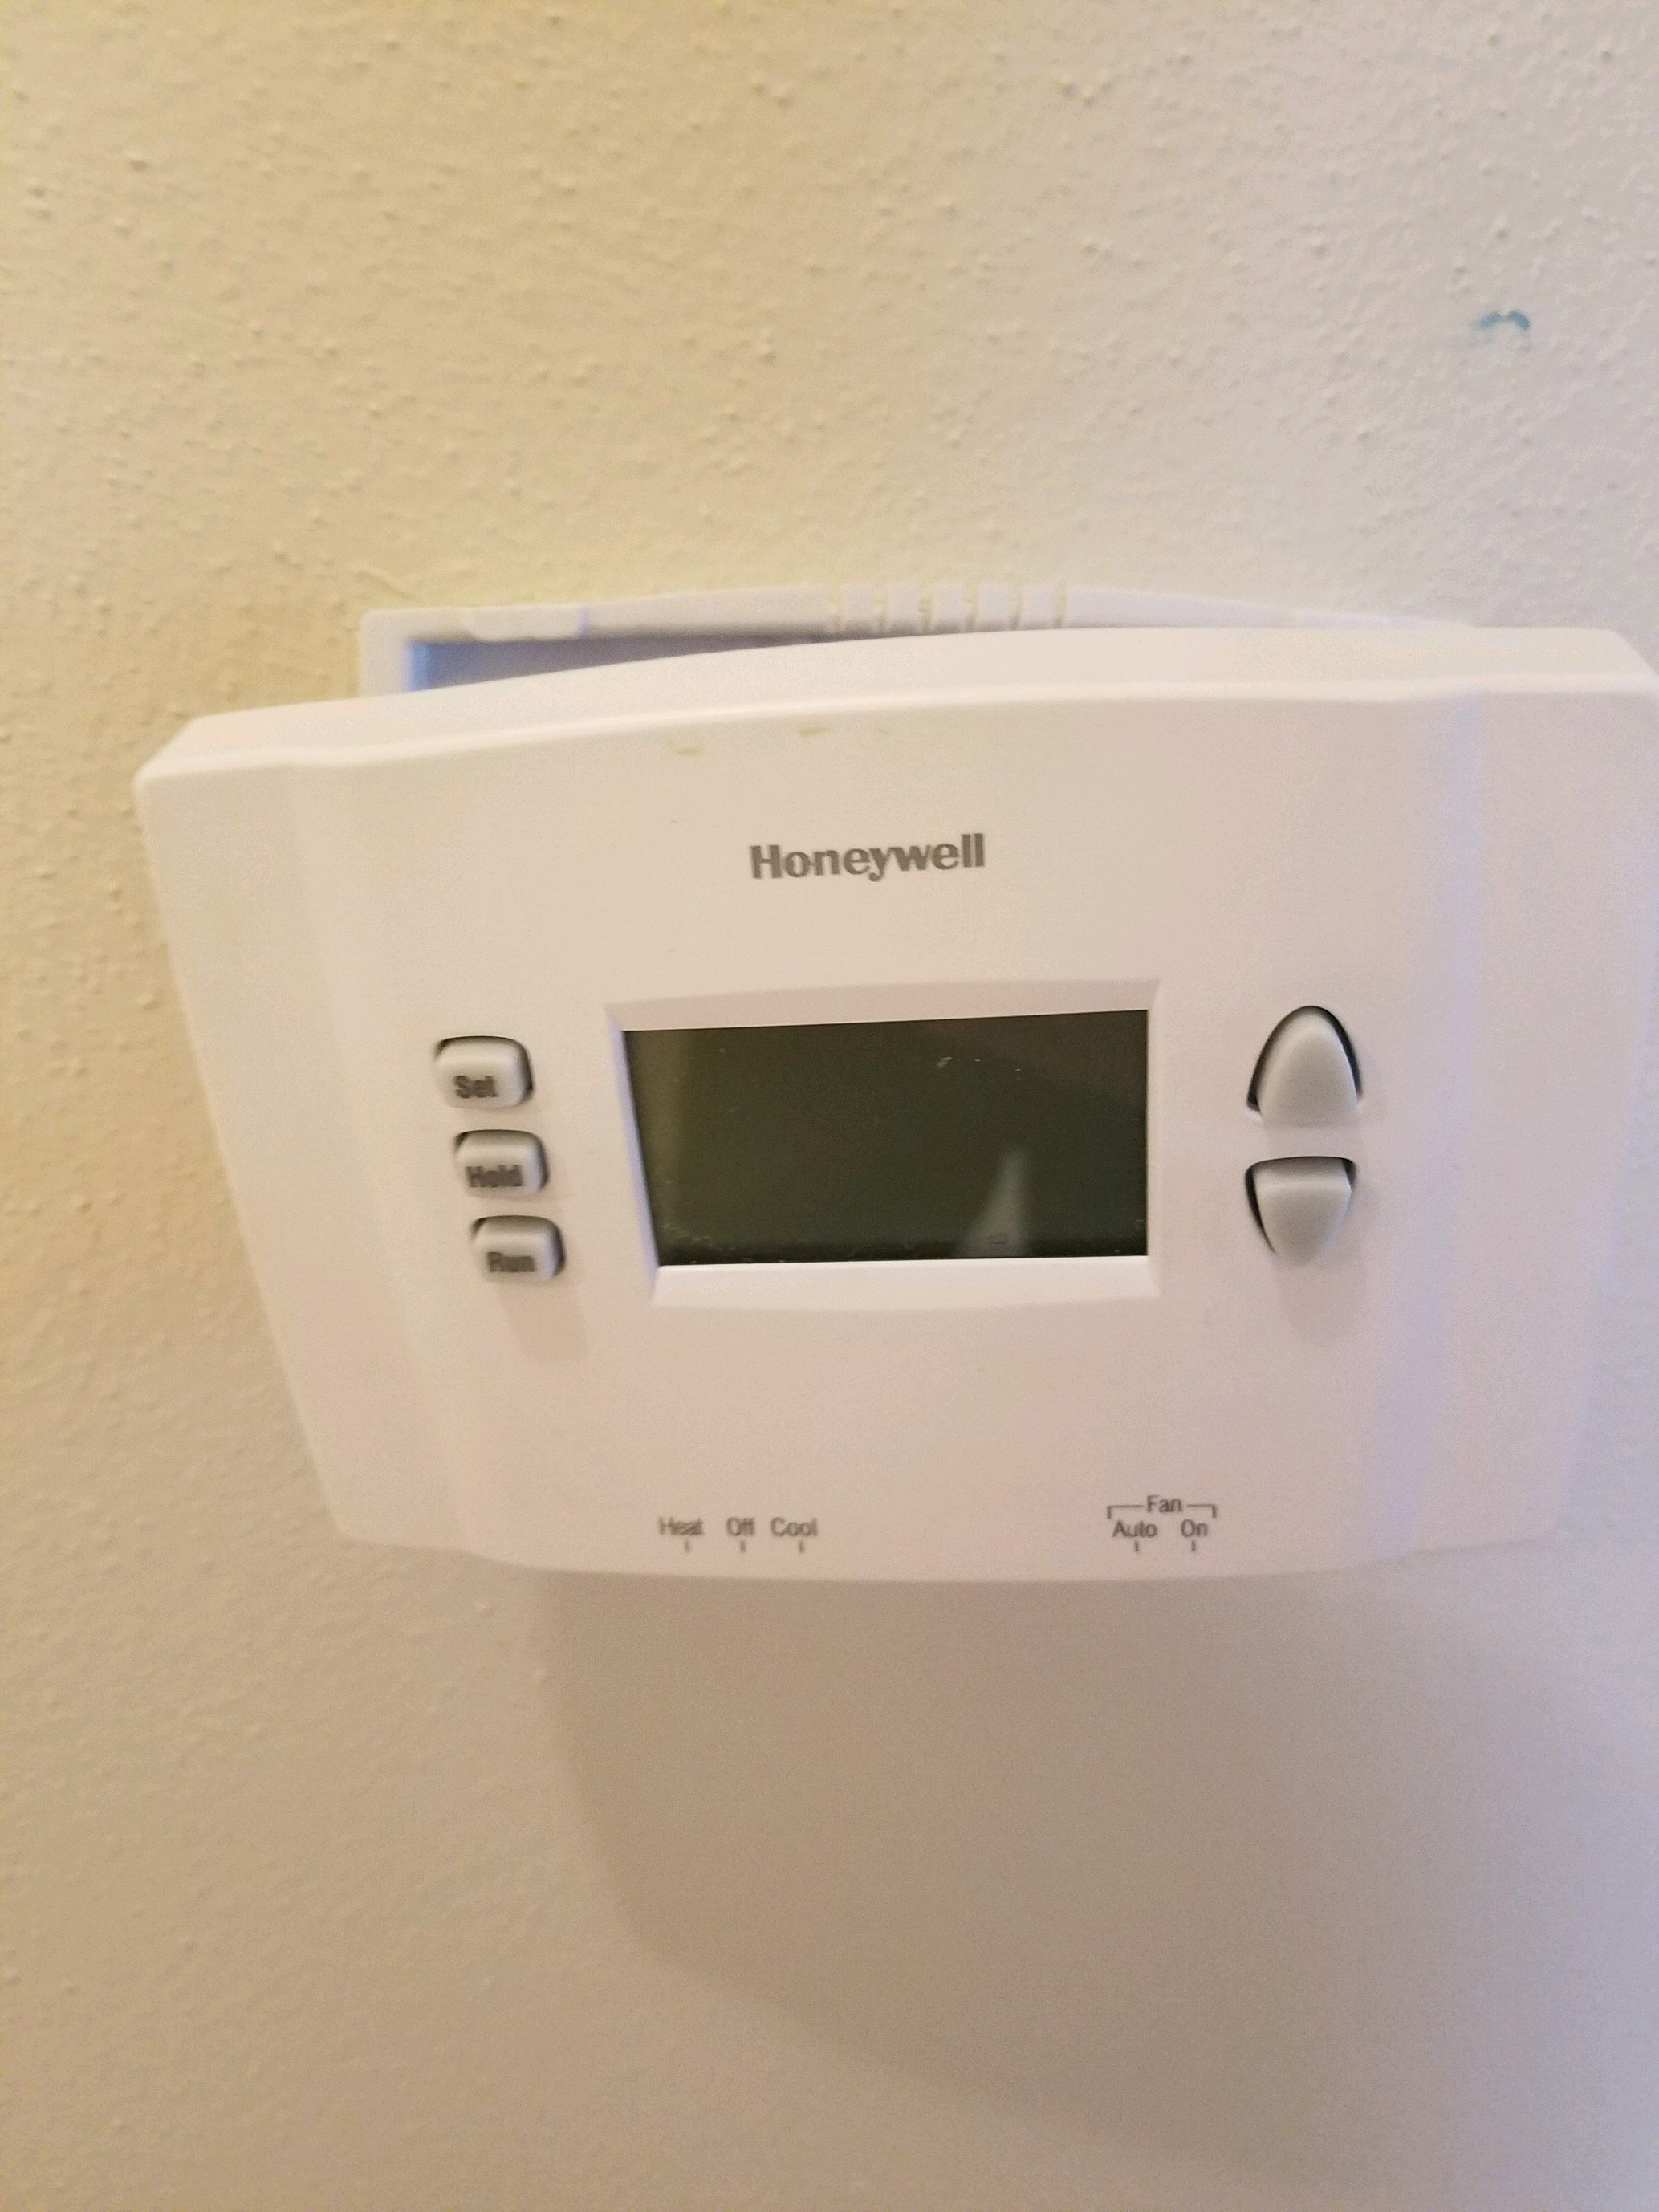 I Am Trying To Replace The Batteries On My Honeywell